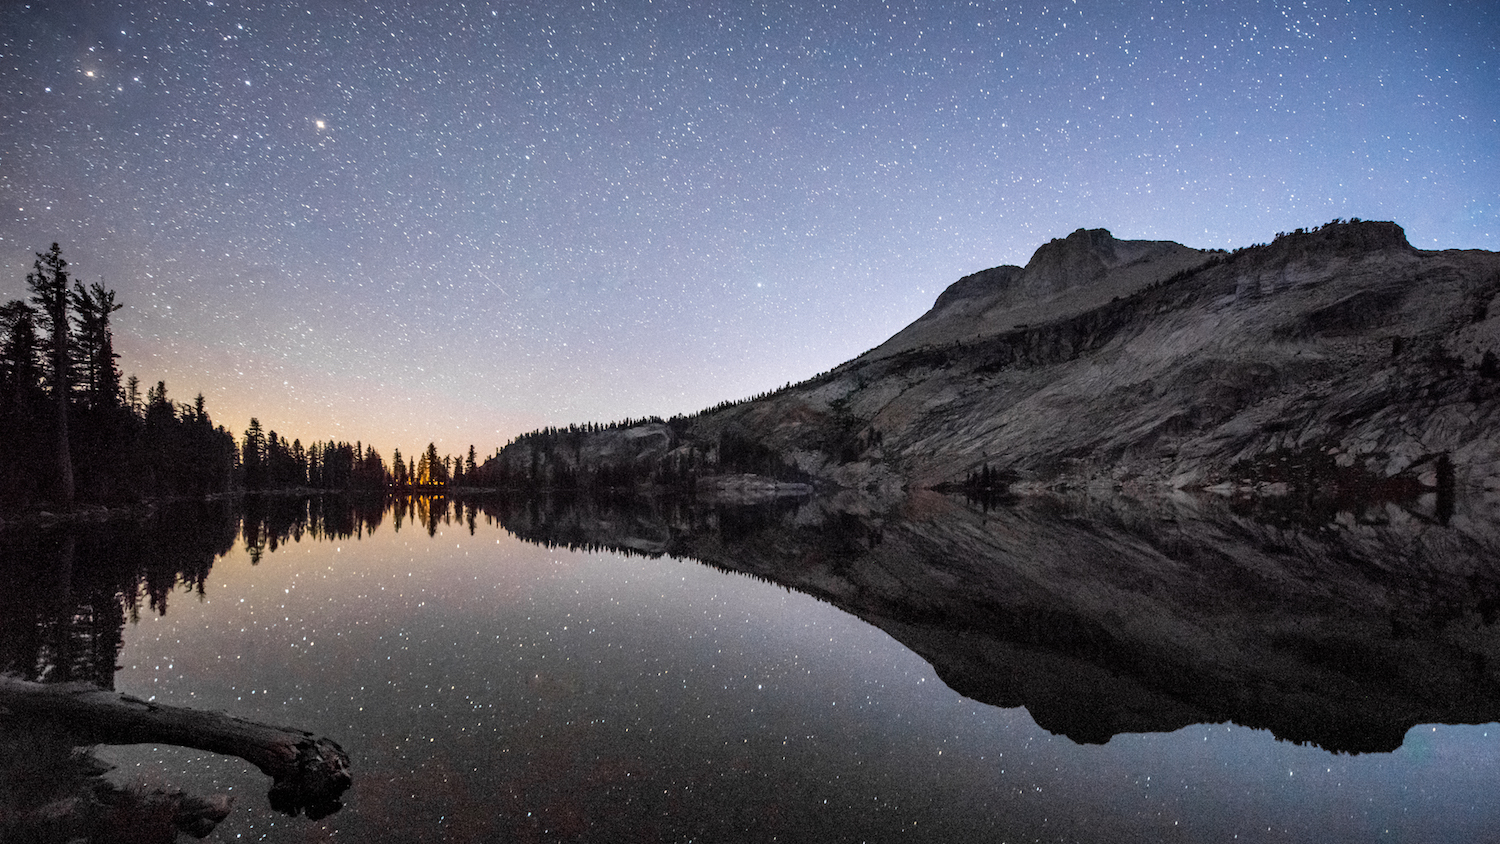 Using The Best Cameras For Night Photography For Epic Photos